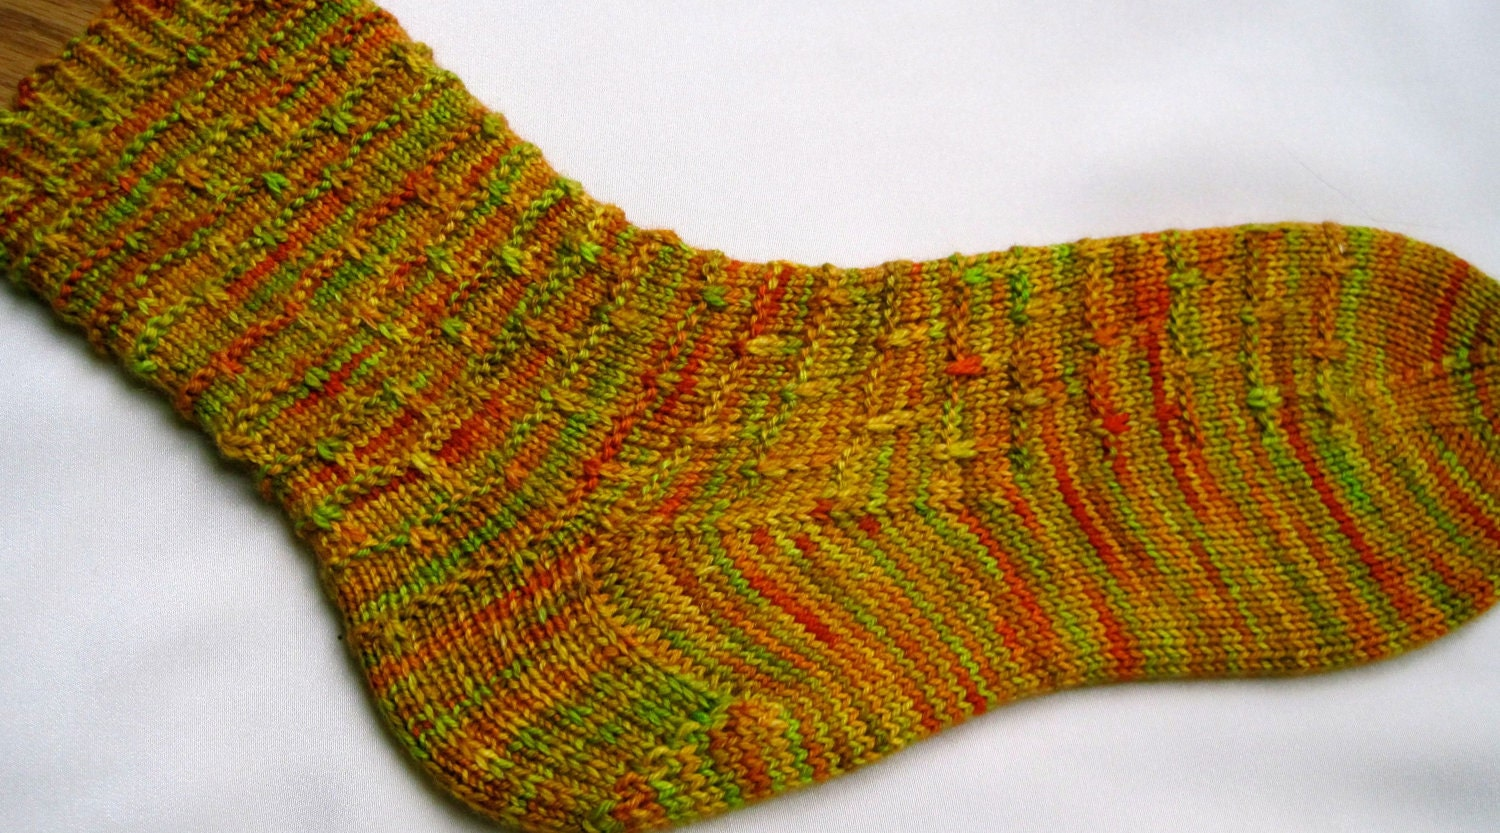 Knitted Sock Pattern: Easy Slipped Stitch Knitting Sock